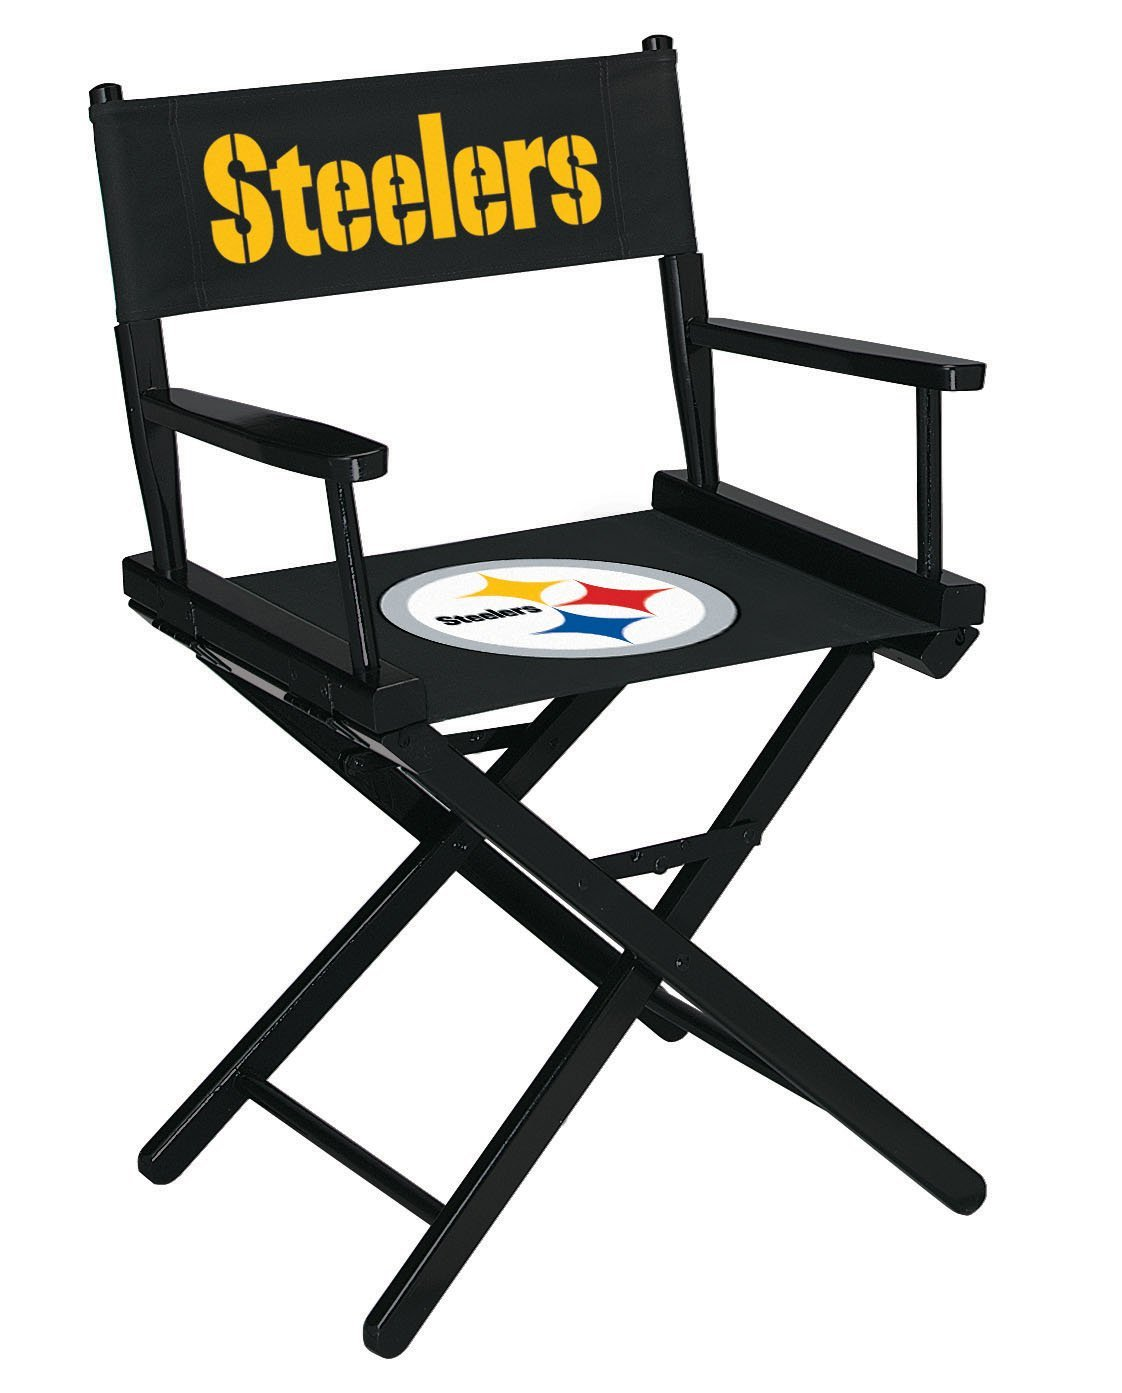 Surprising Cheap Steelers Chair Find Steelers Chair Deals On Line At Uwap Interior Chair Design Uwaporg